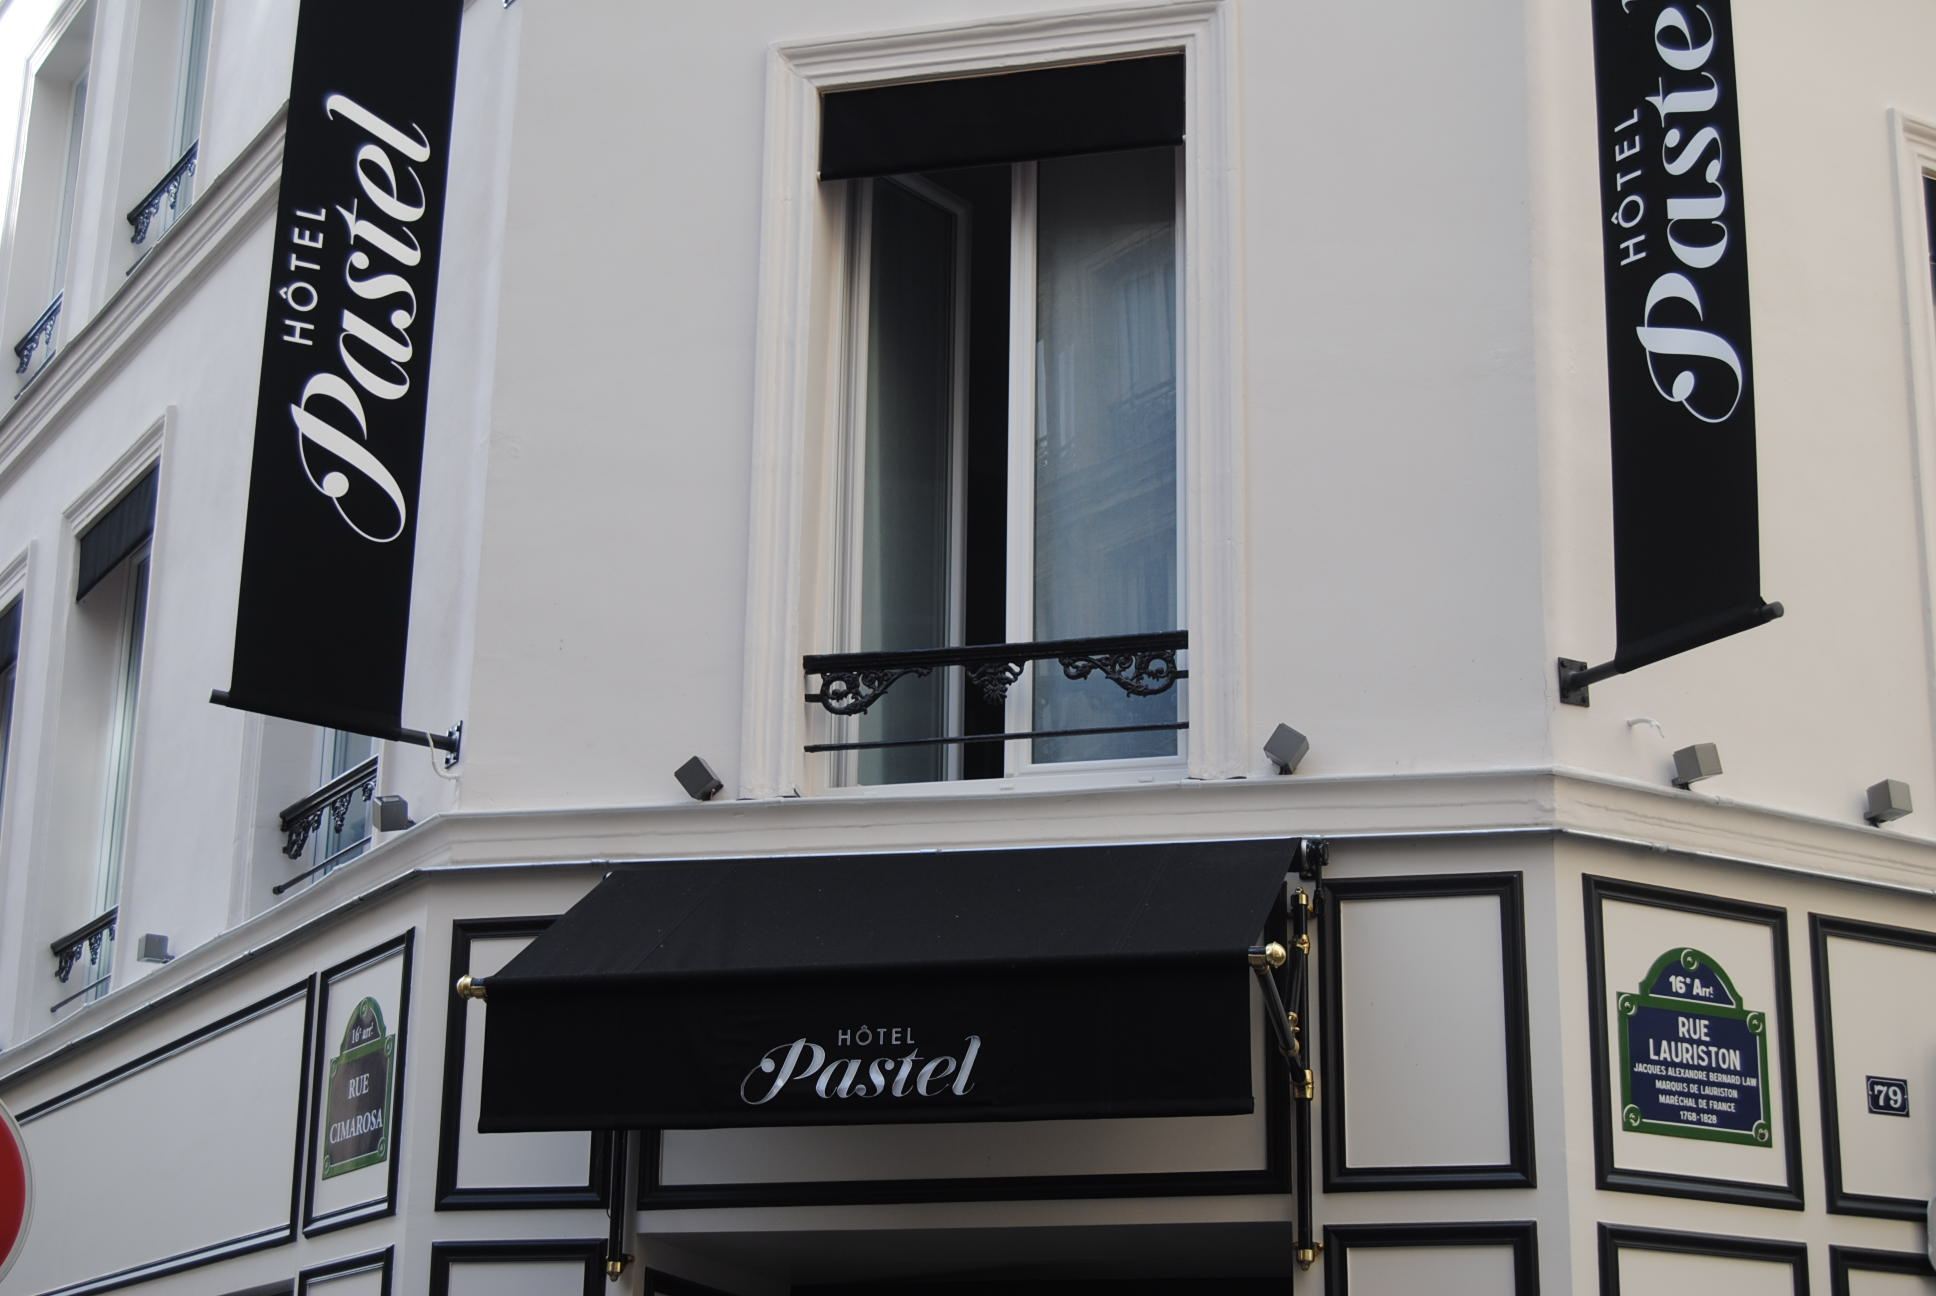 review hotel pastel paris